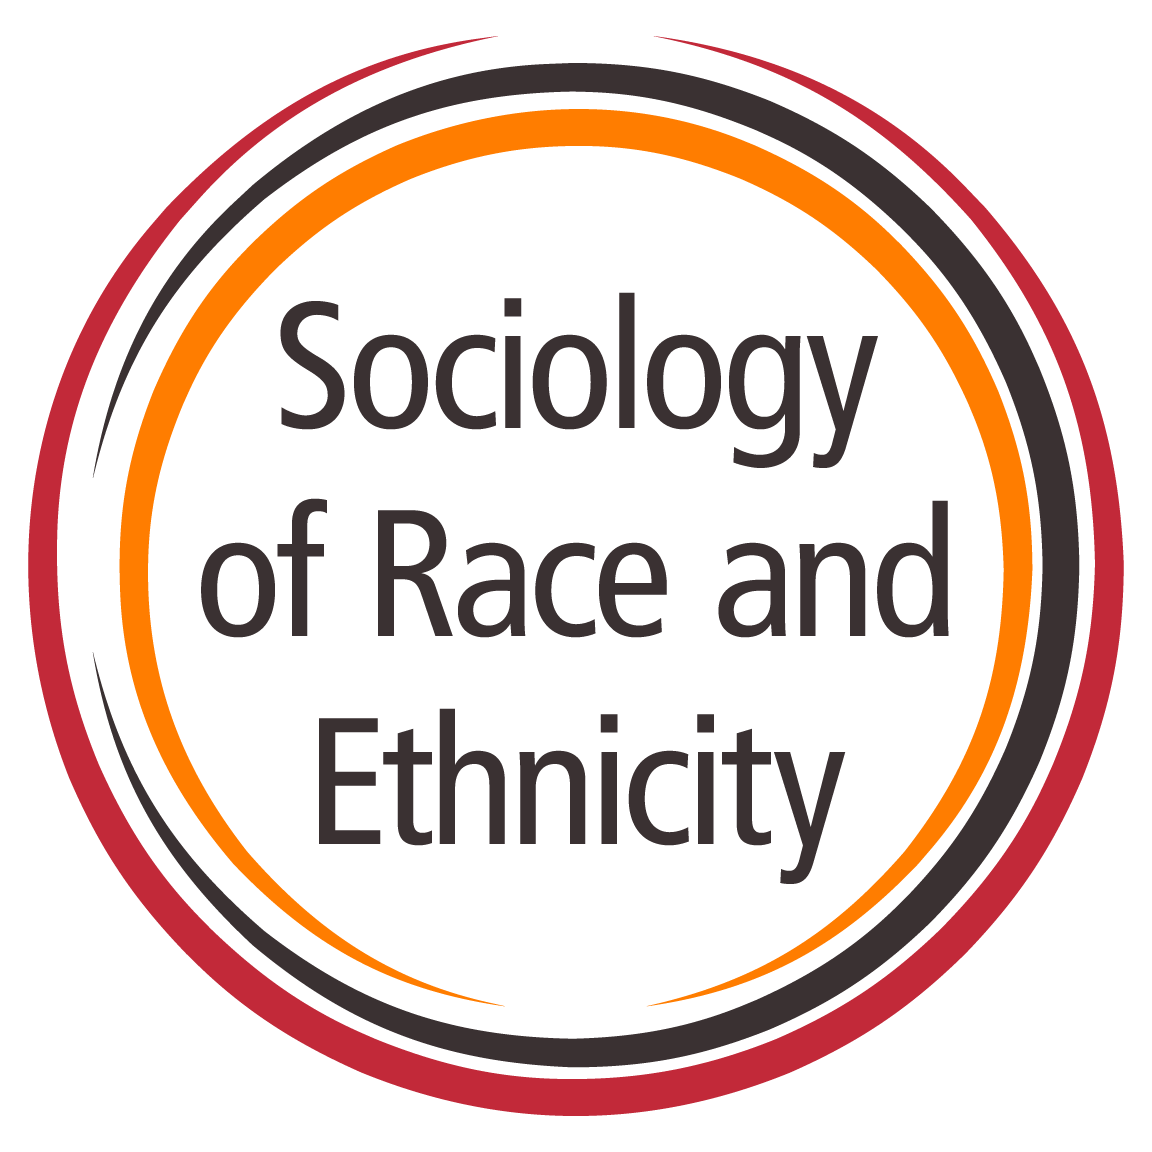 Sociology of Race and Ethnicity